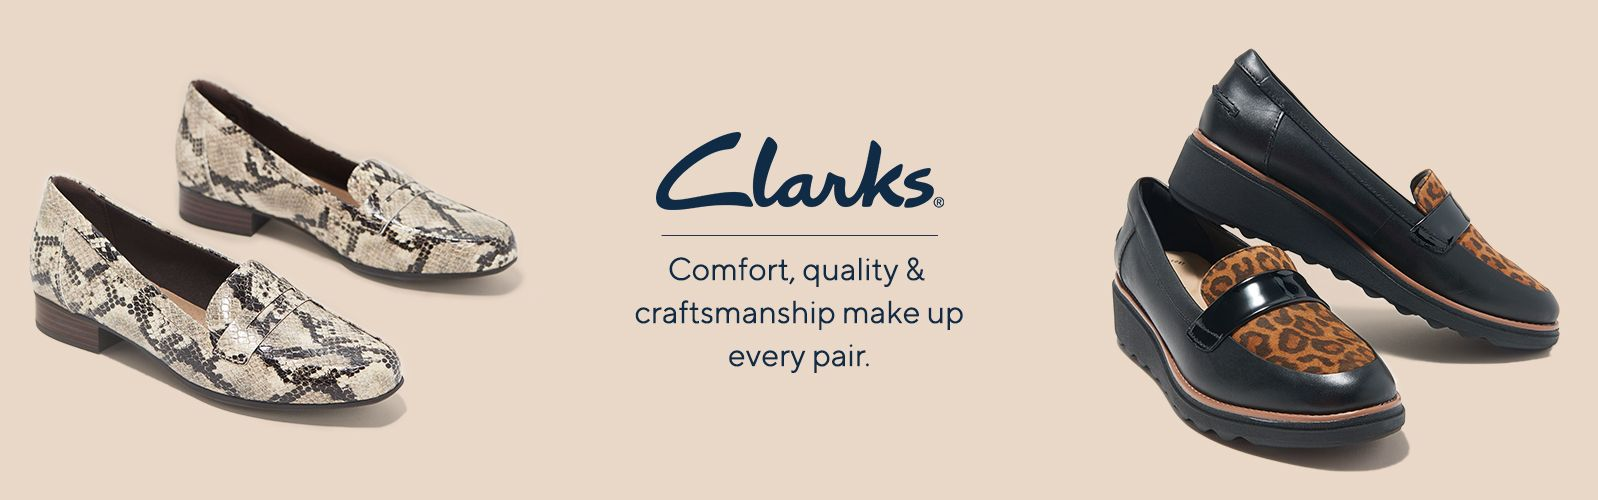 Clarks — Women's Clogs, Loafers, Mary